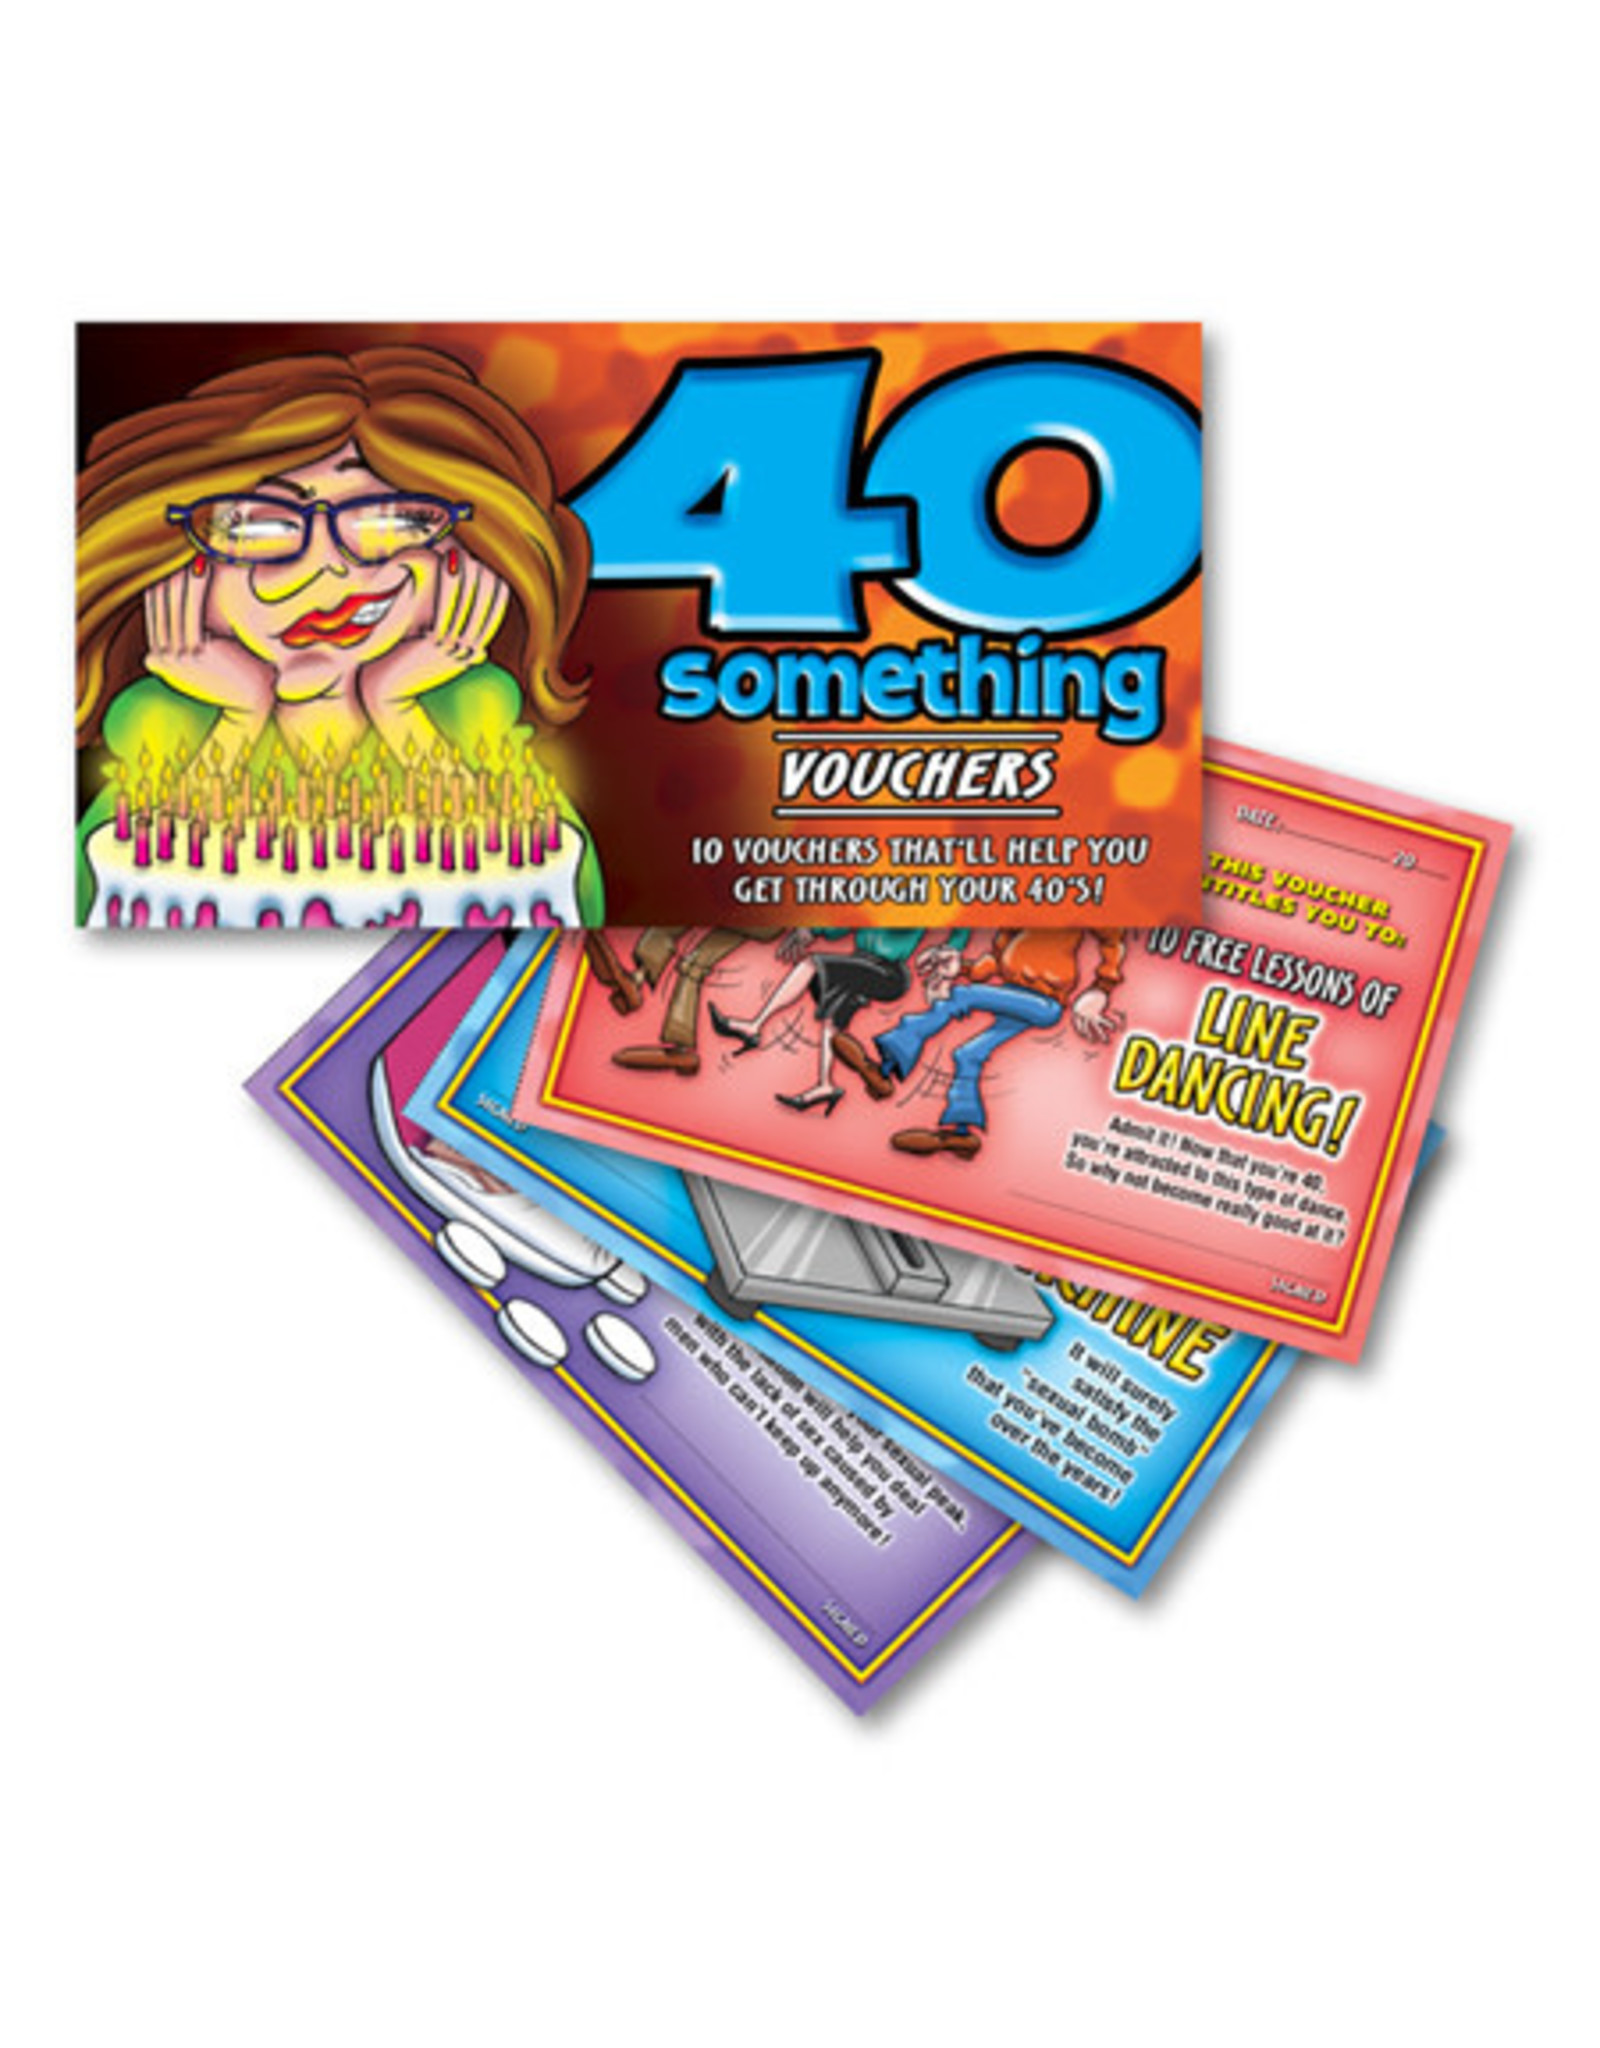 Ozze Creations 40 Something Vouchers - For Her